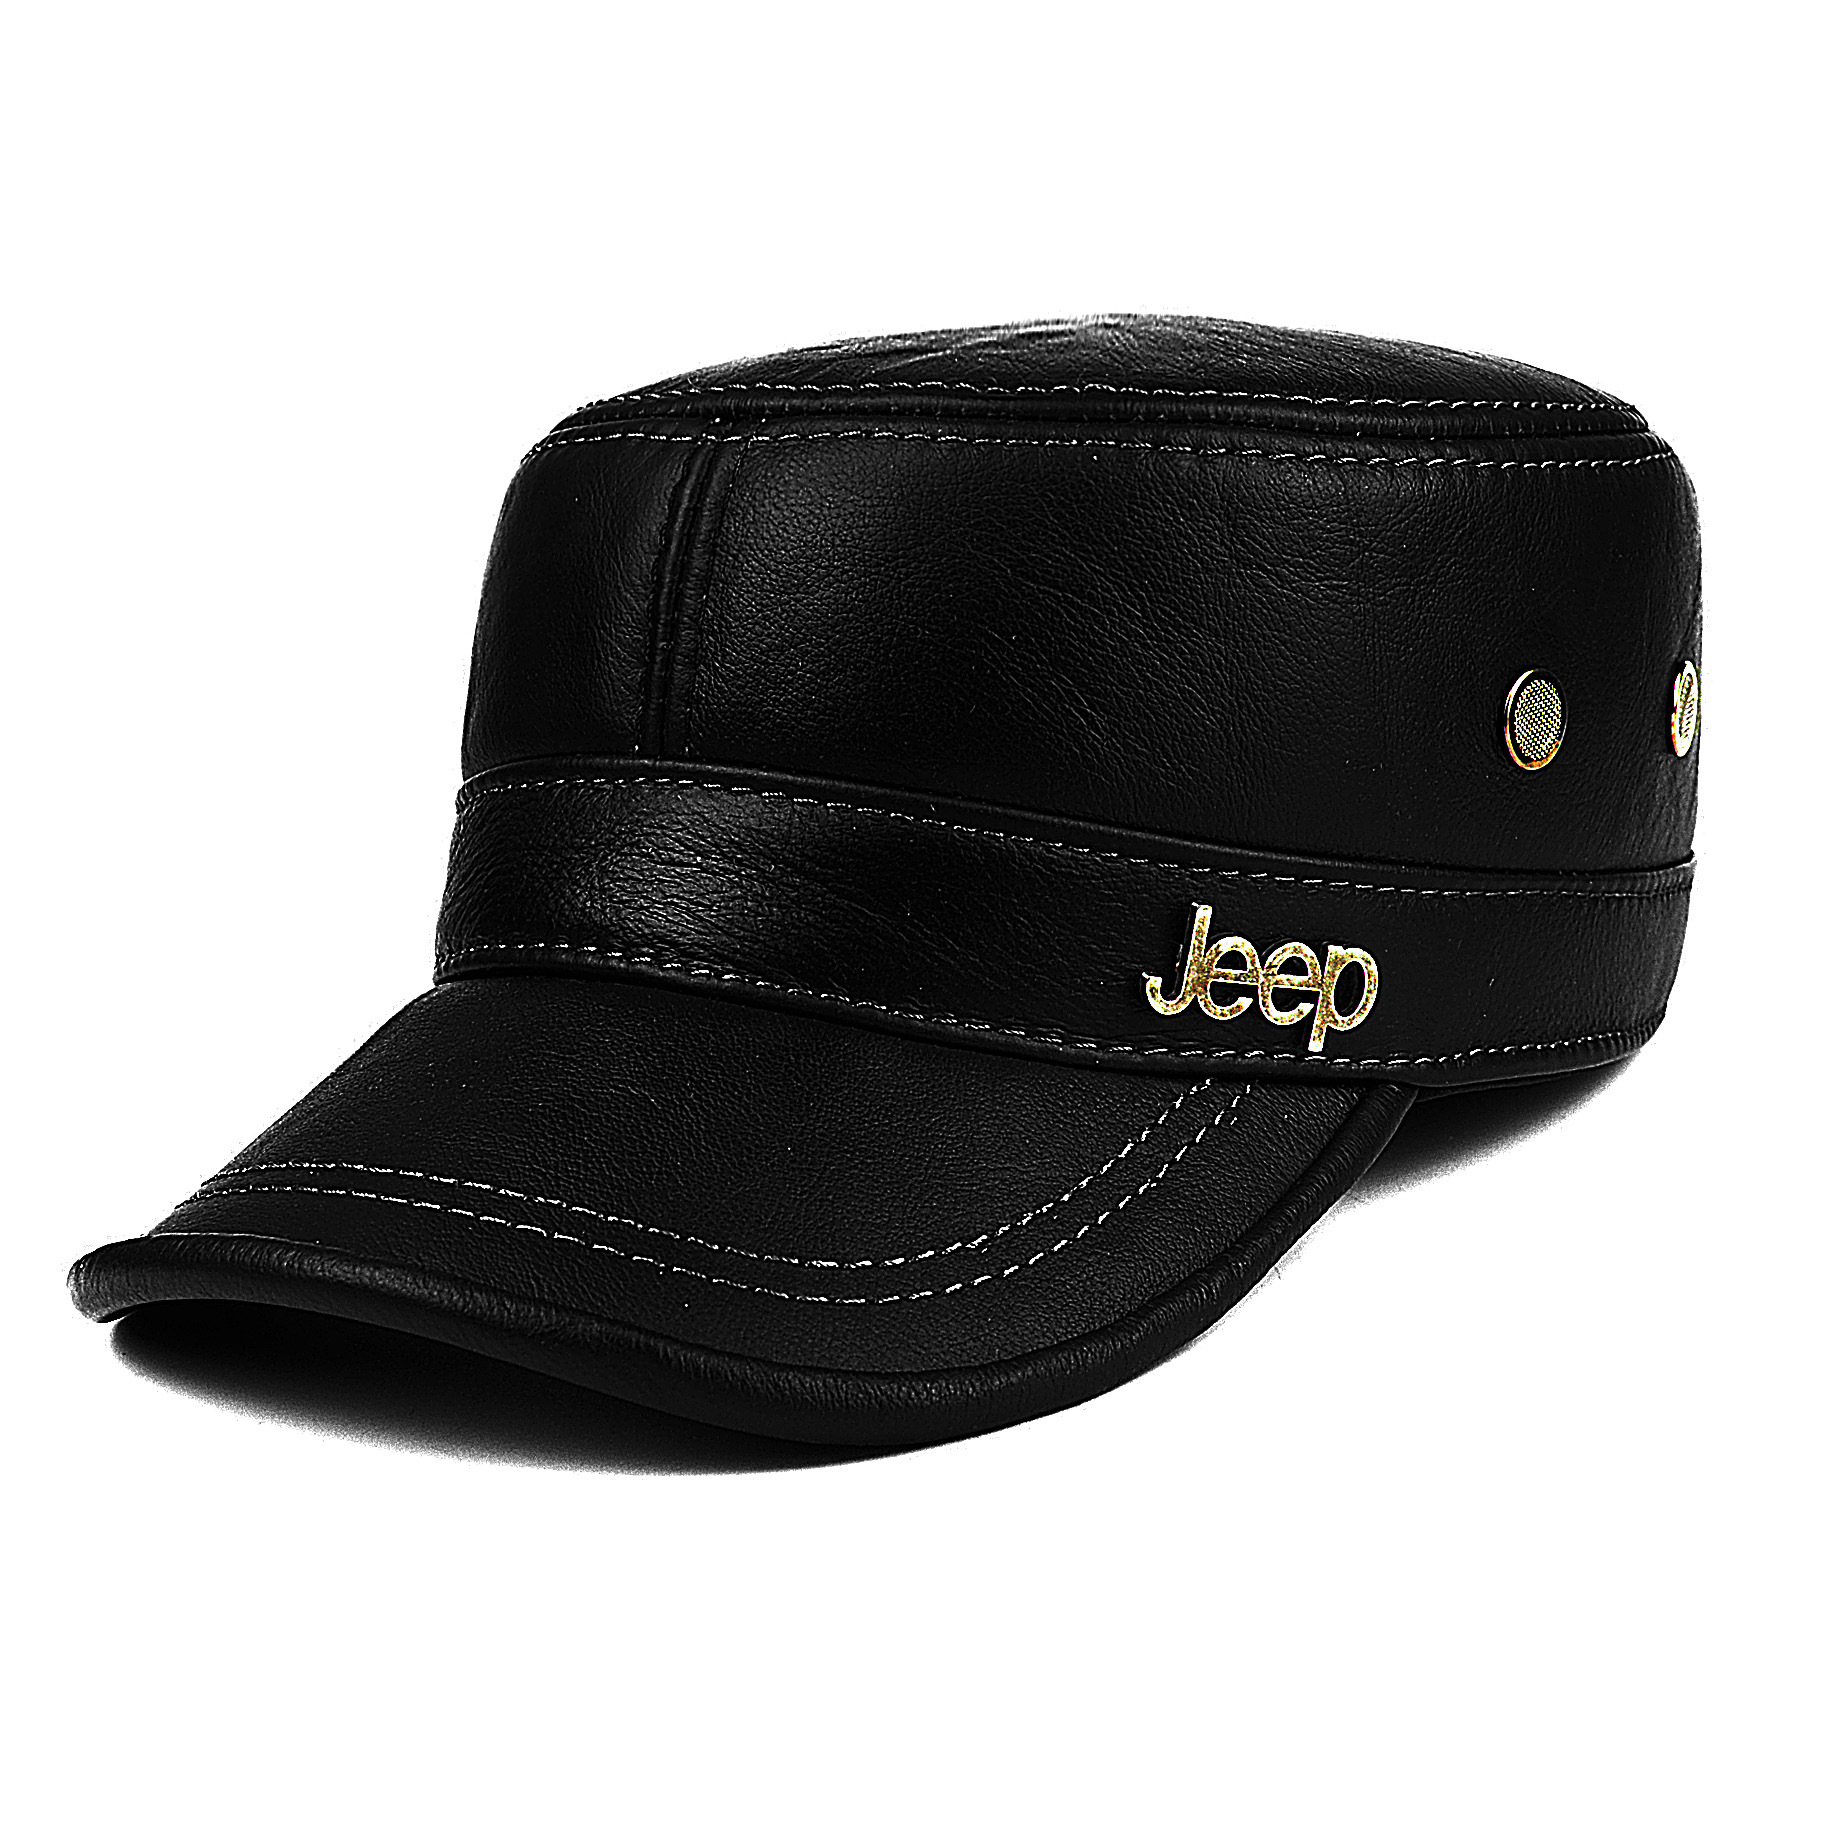 Image 4 - Men's Genuine Leather Hat Adult New Cowhide Hat Male Outdoor Warm Flat Leather Hat Winter Casual Leather Cap Adjustable B 8386-in Men's Baseball Caps from Apparel Accessories